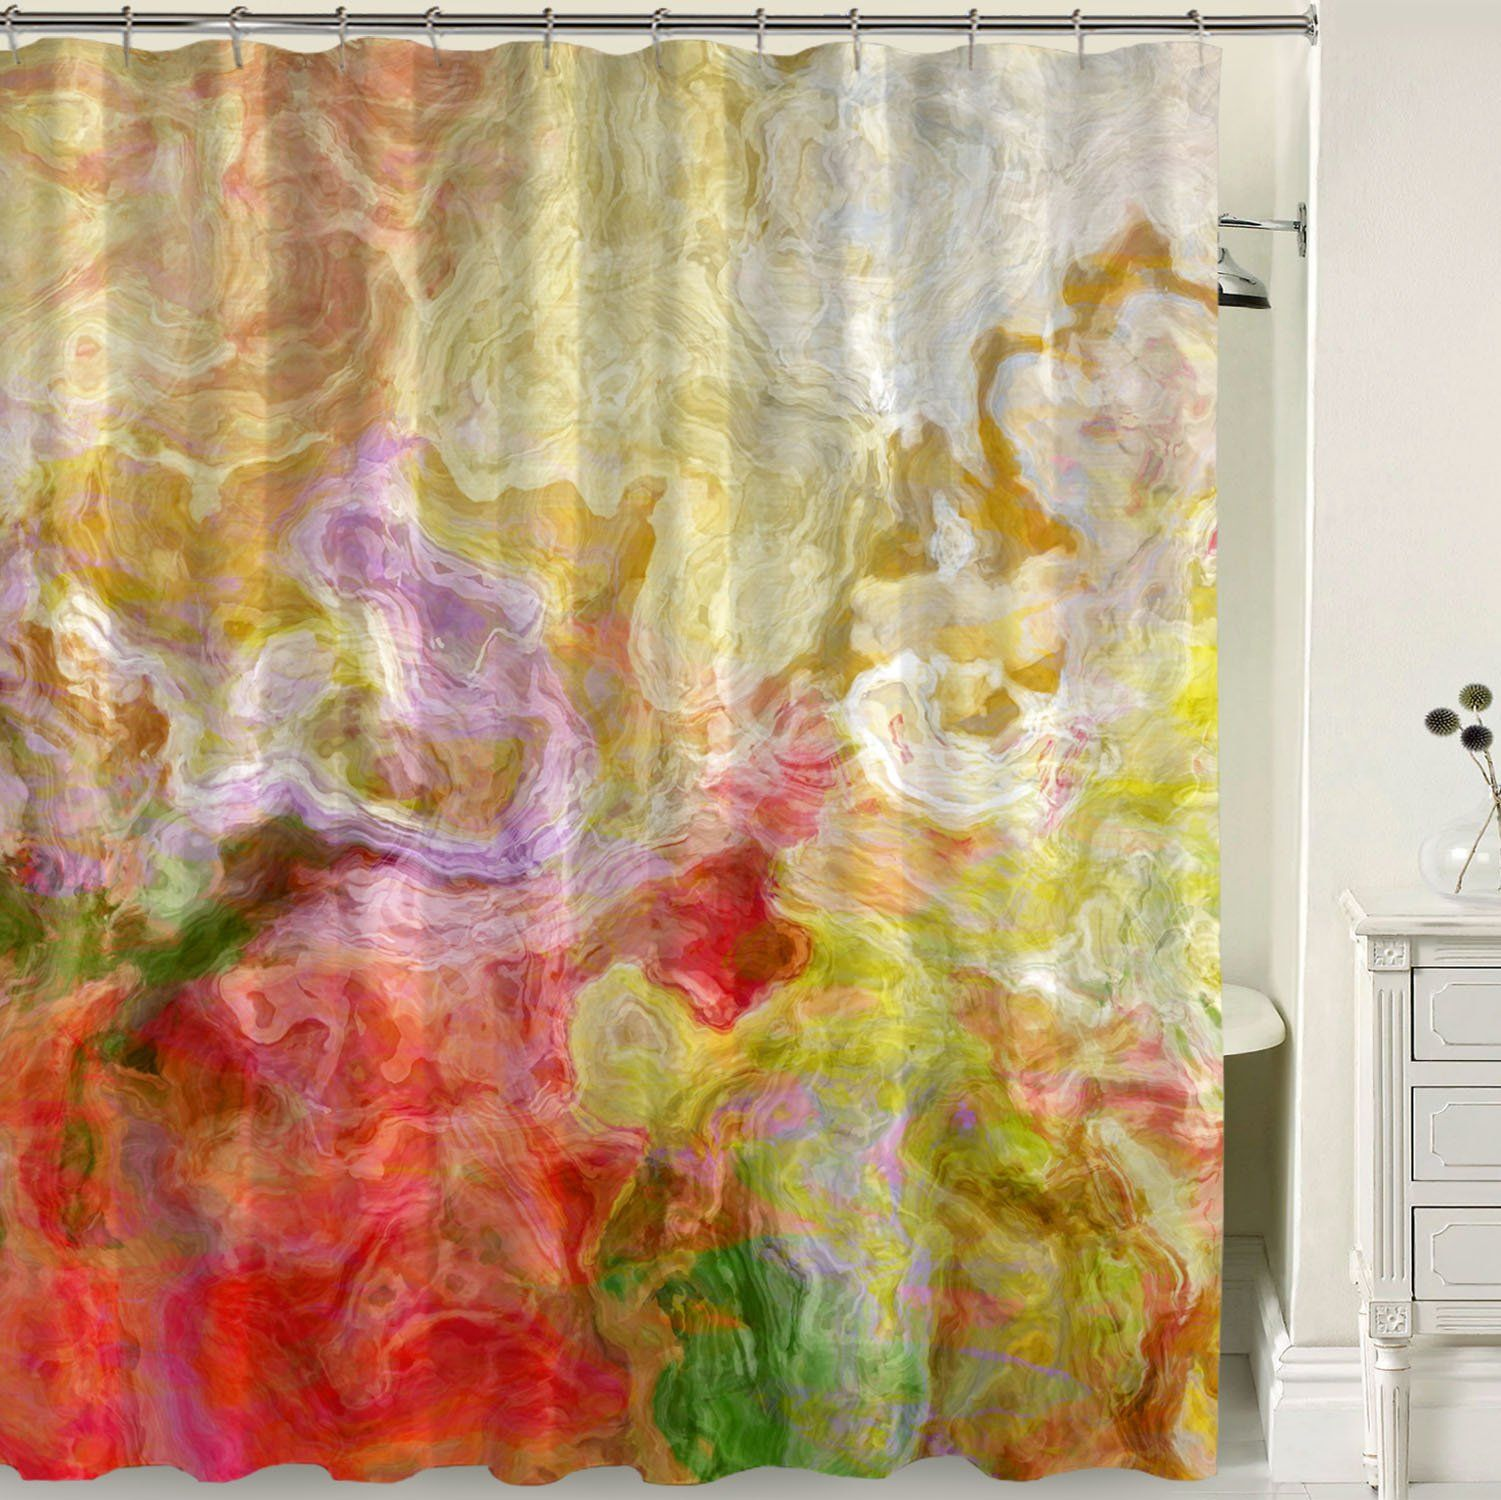 Shower Curtain Morningside Green Shower Curtains Contemporary